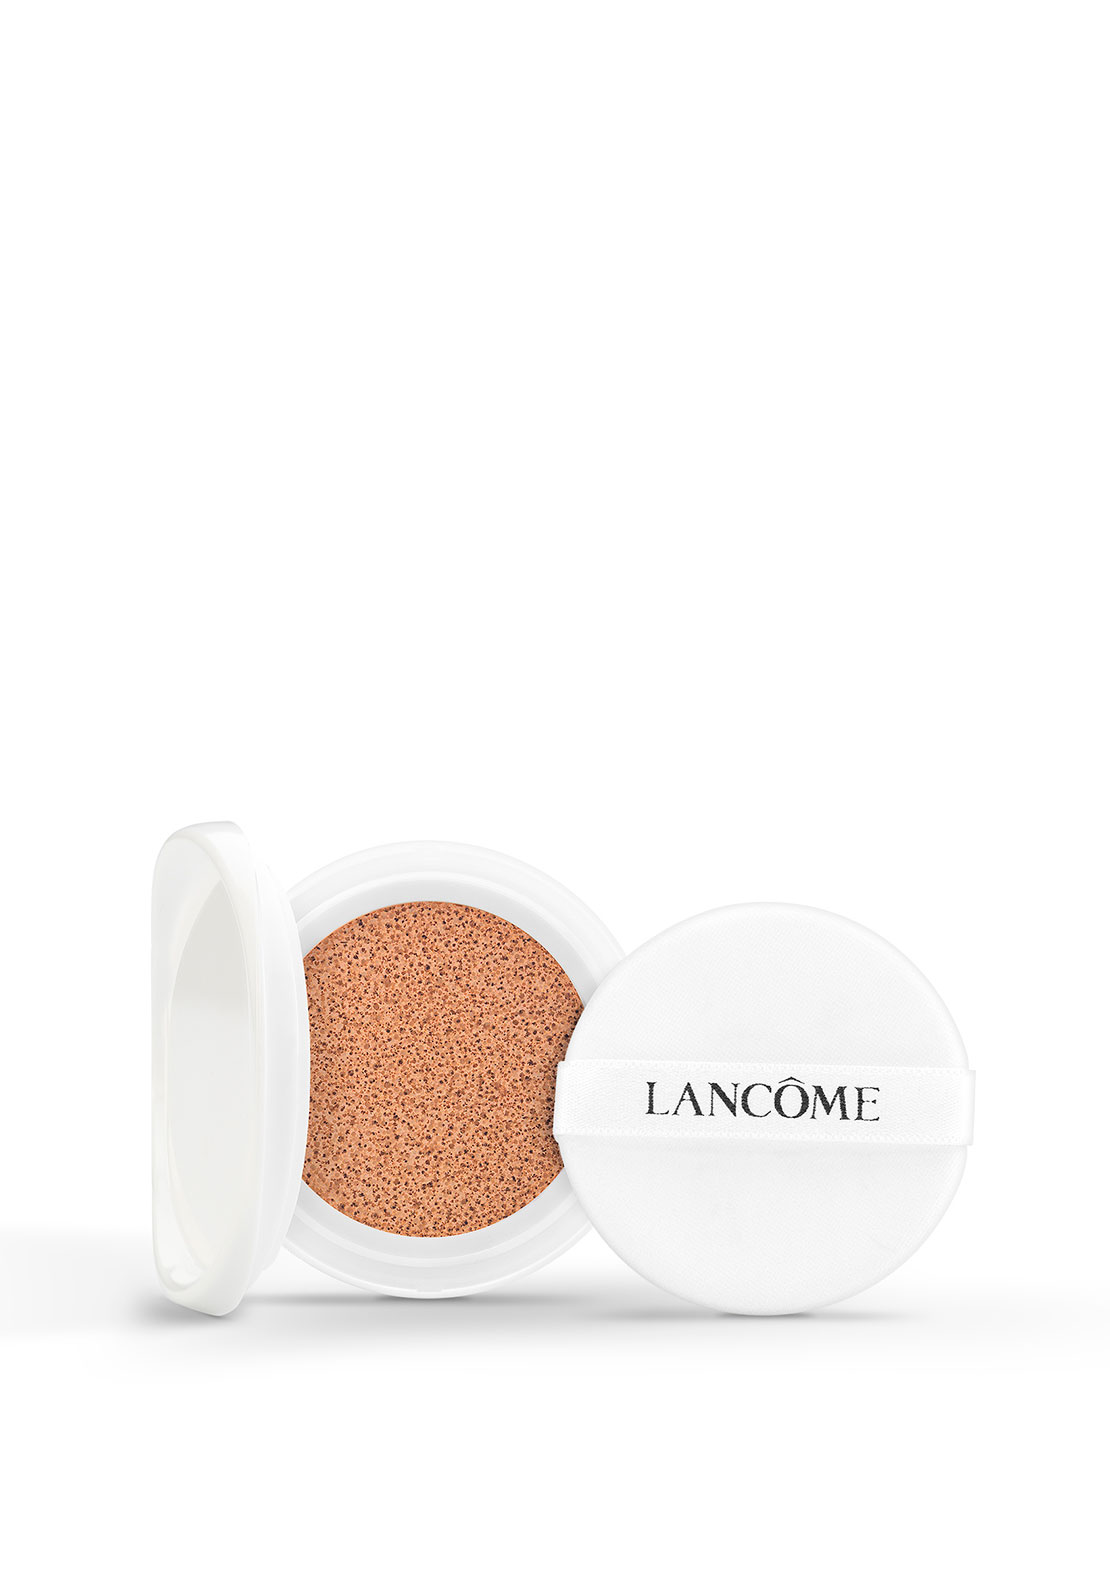 Lancome Miracle Cushion Compact Foundation Refill, Beige Dore